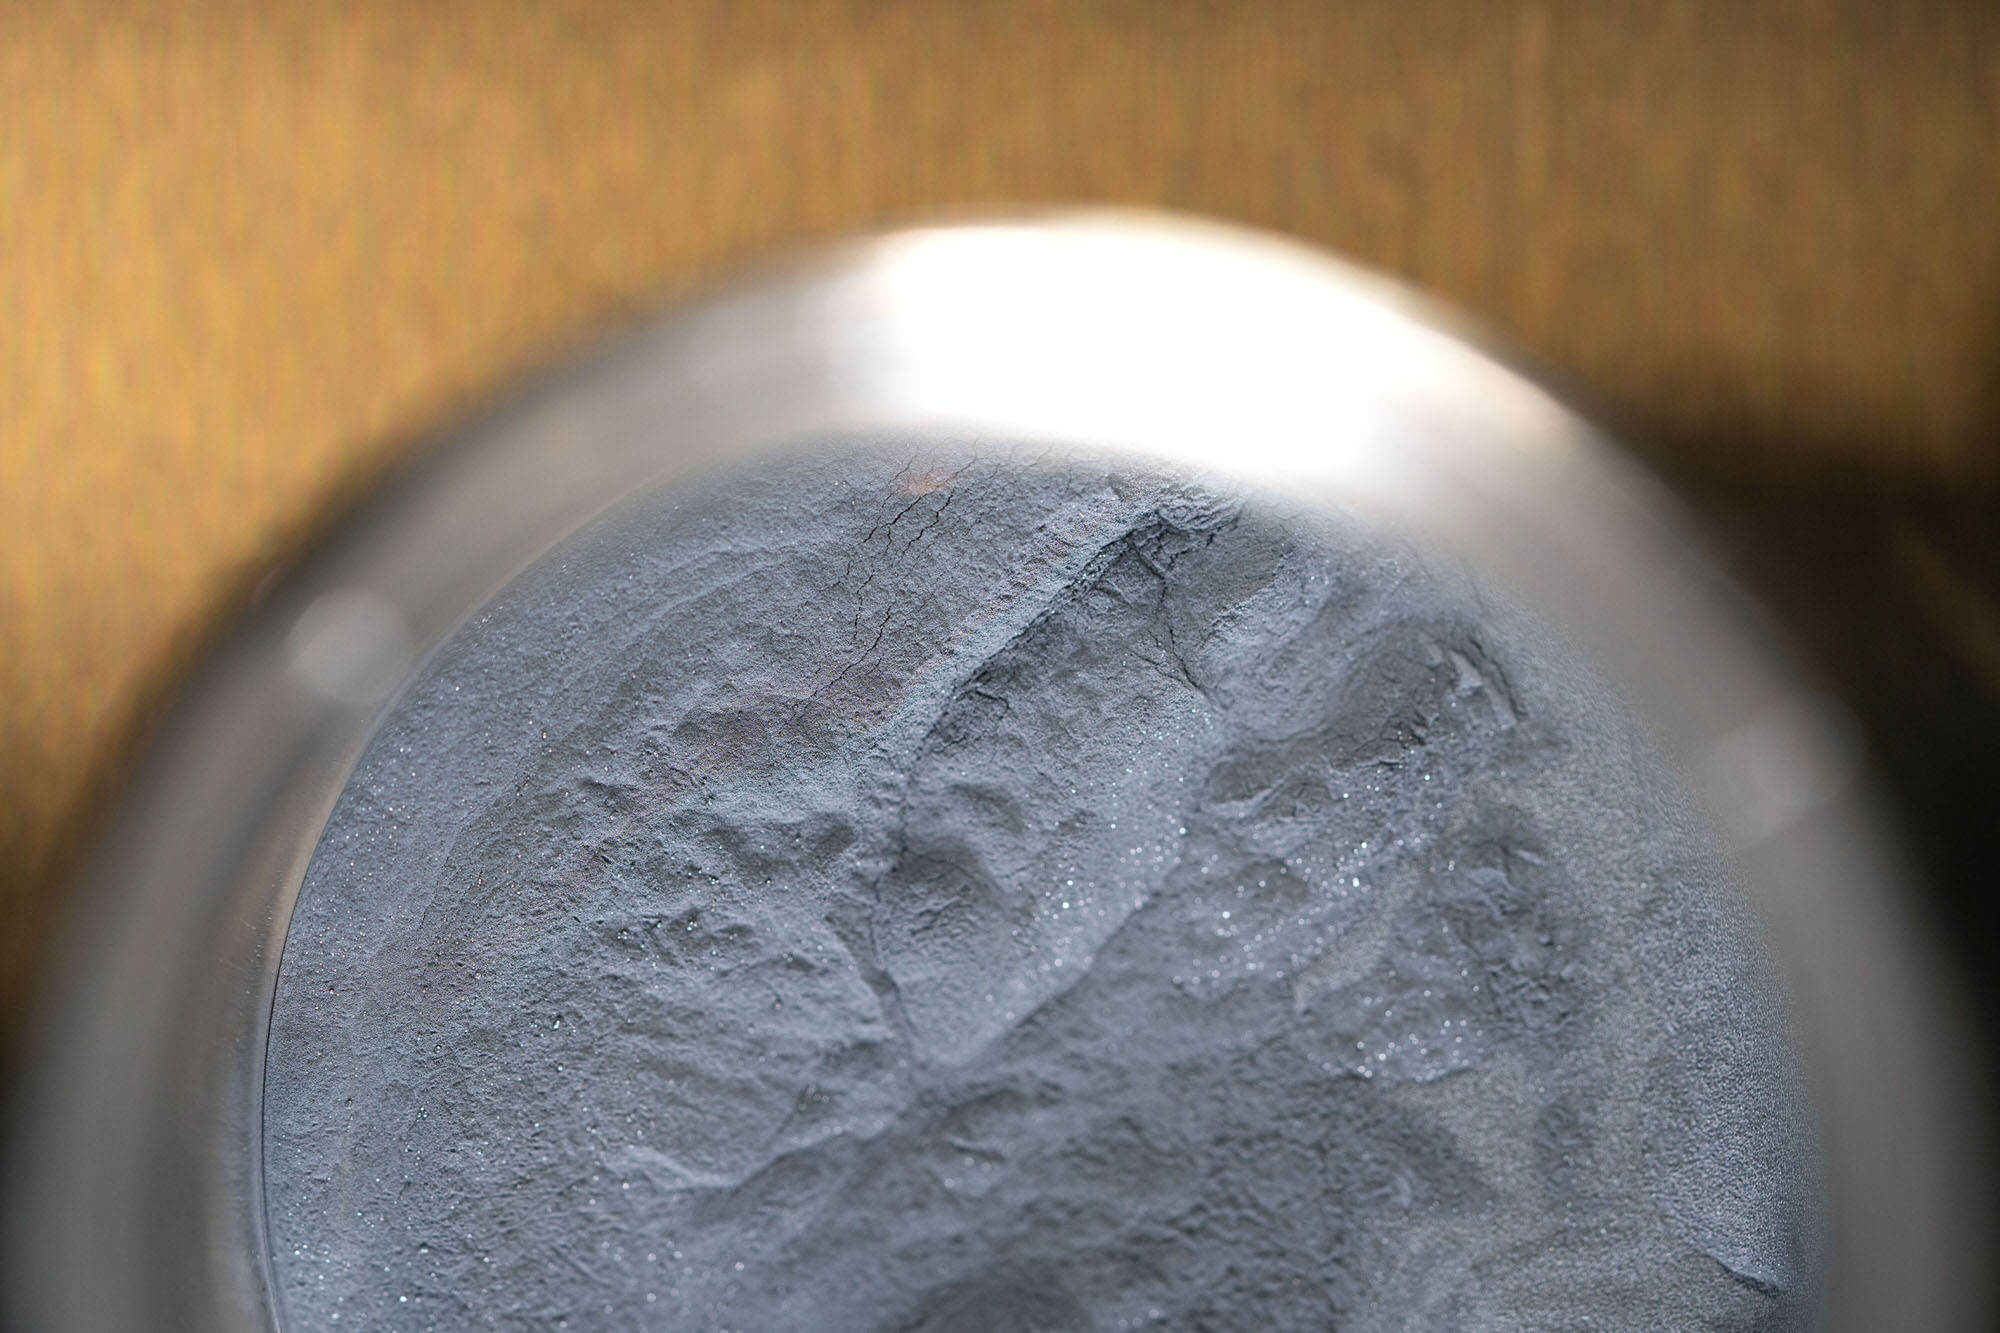 General Electric AP&C 3D Printing Titanium Powder, Montreal, Canada